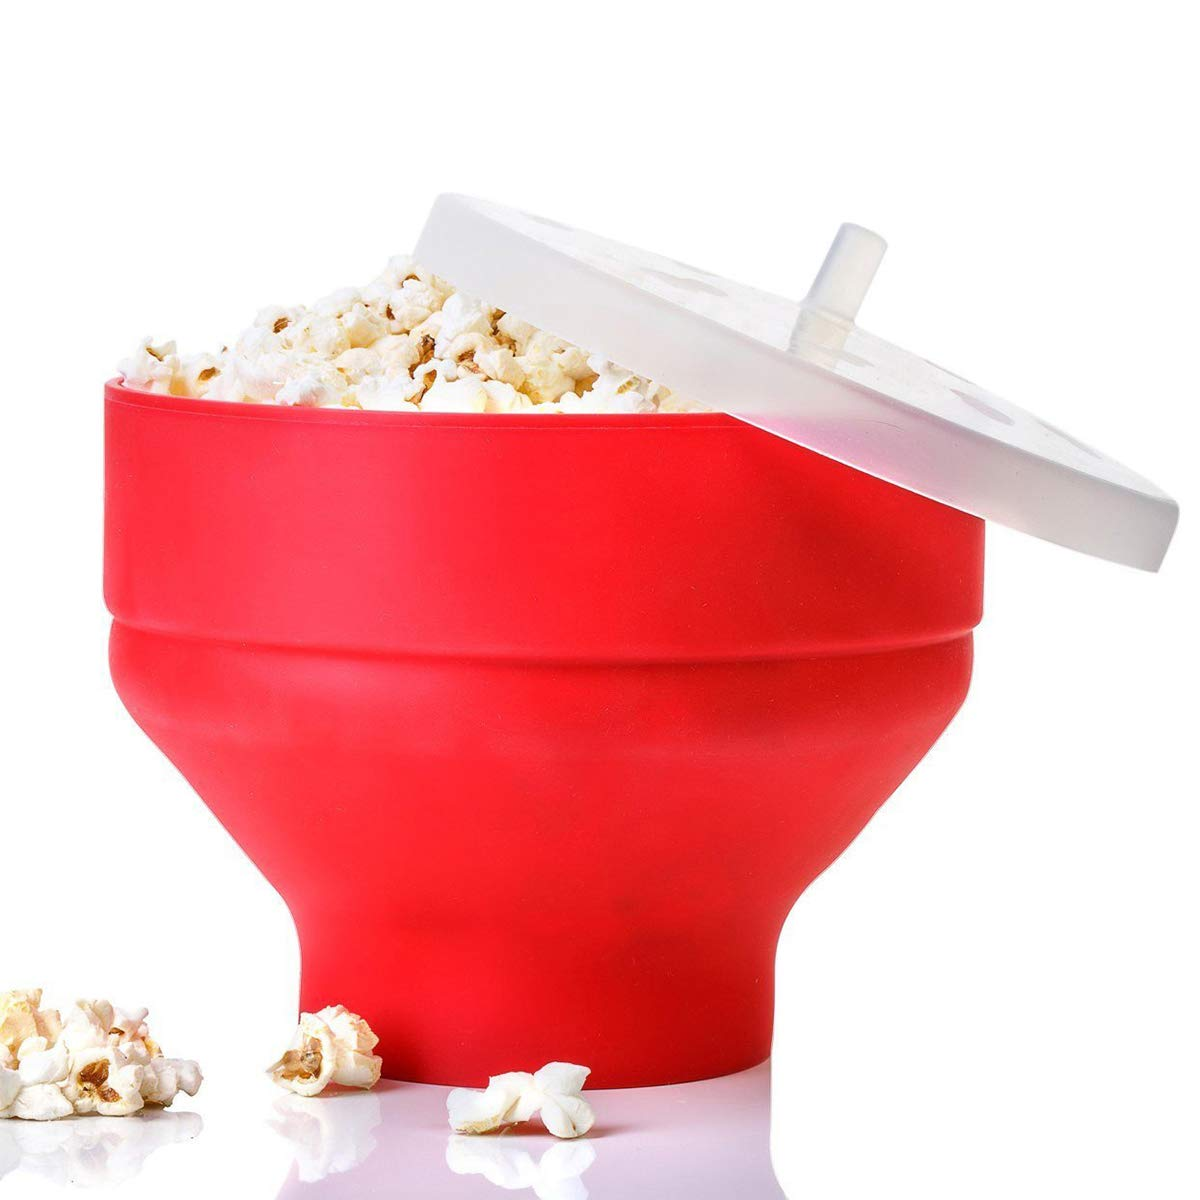 Shengyaju Microwave Popcorn Popper Collapsible Silicone Microwave Hot Air Popcorn Popper Bowl With Lid